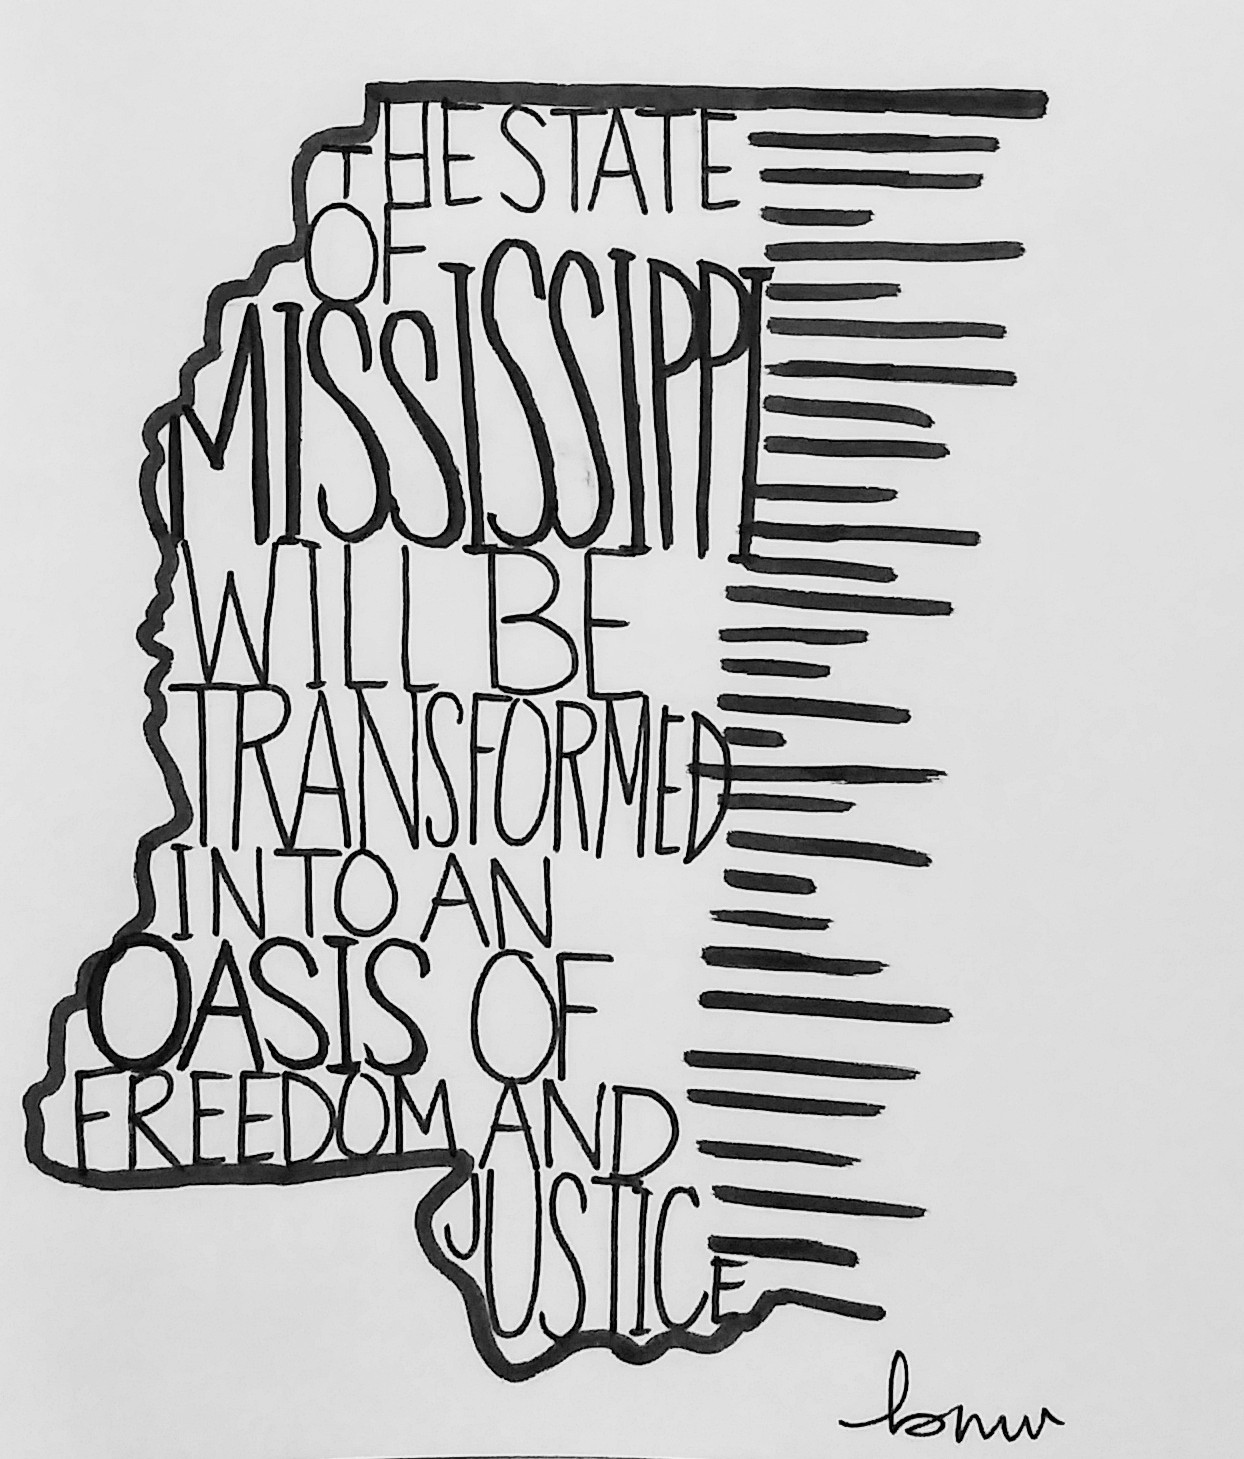 Mississippi—We Have More To Do